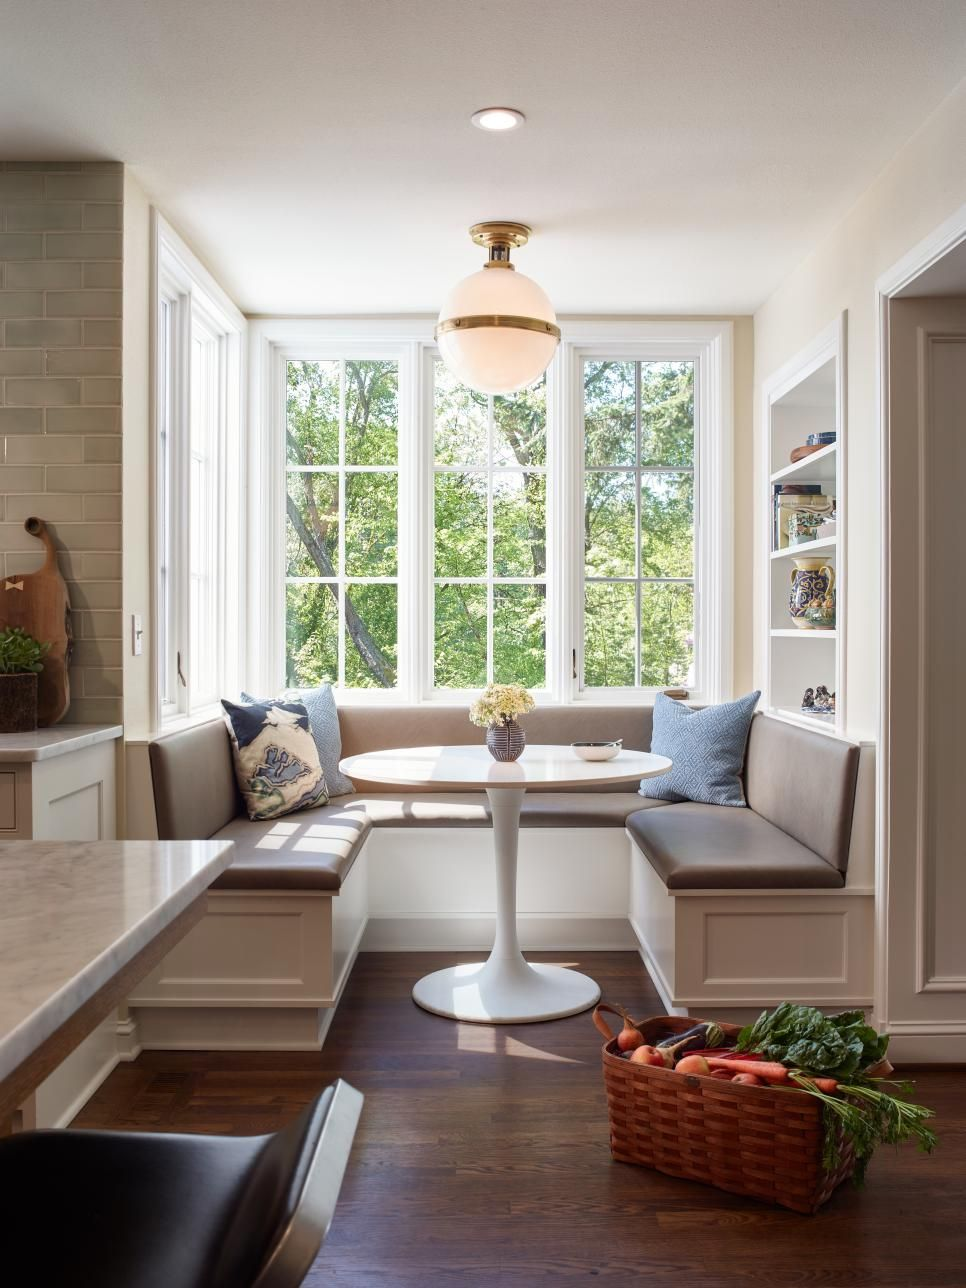 Kitchen Table Design Ideas and Options